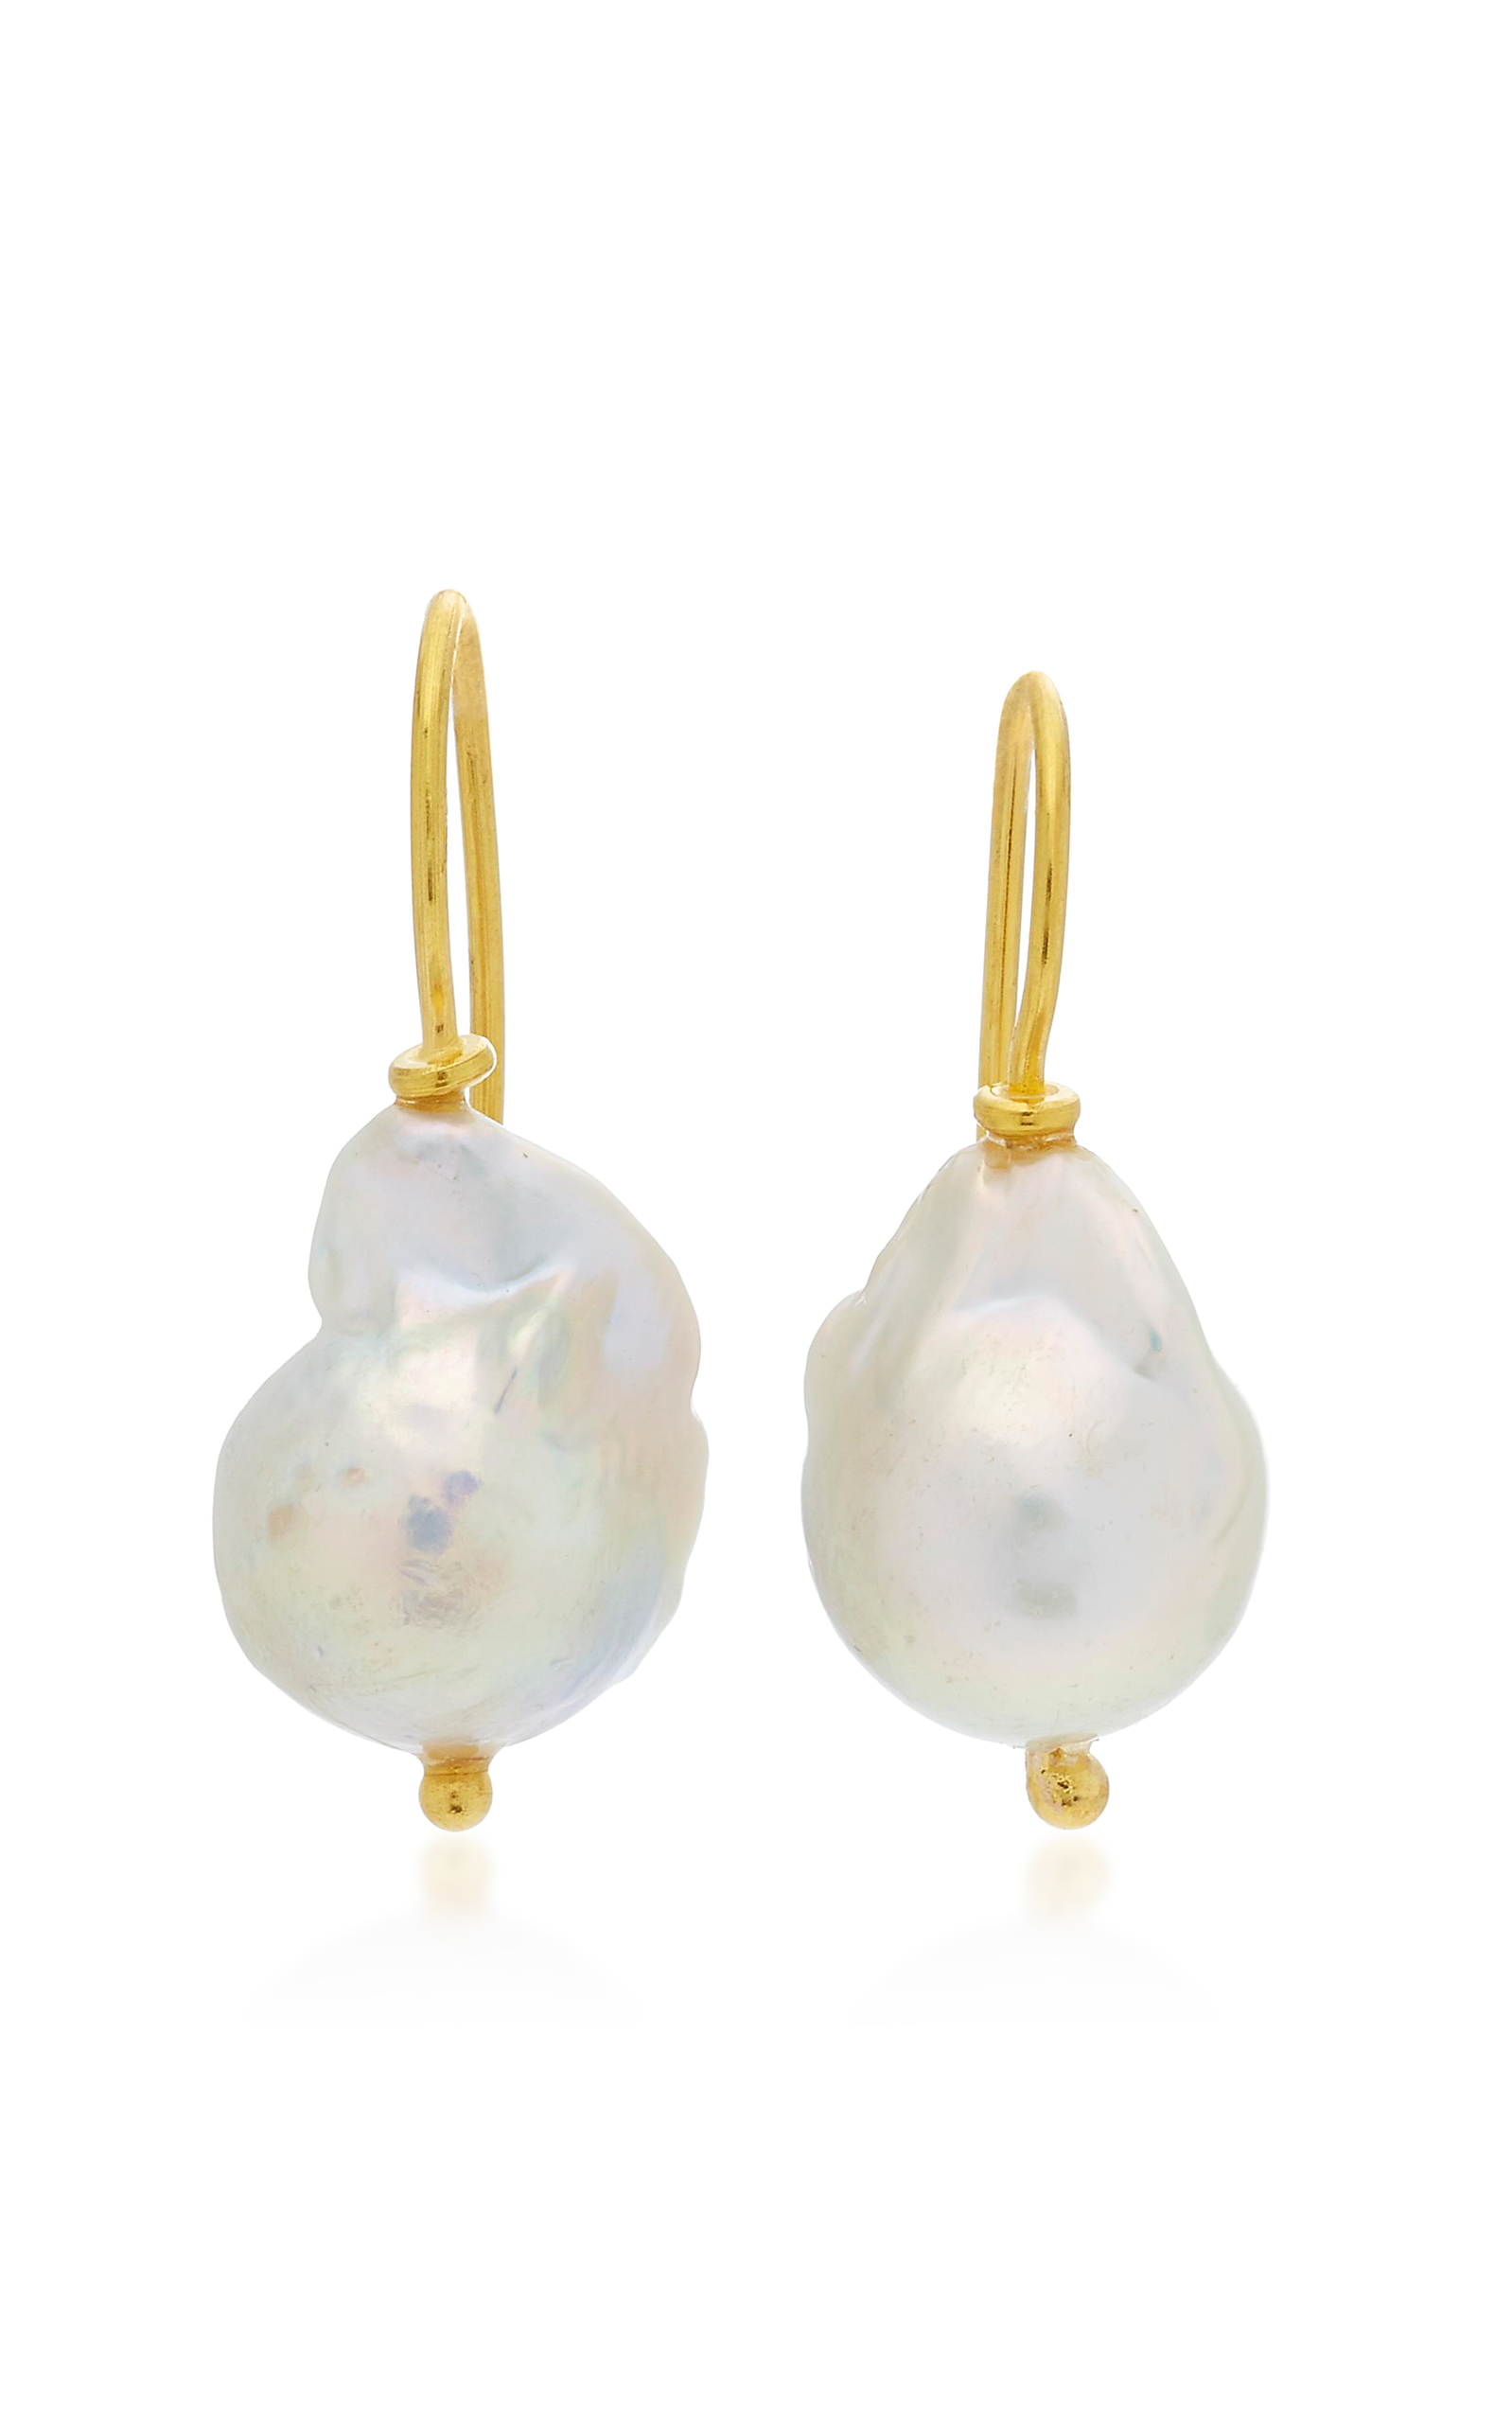 jewelry stud stones pearl color size earrings kivn heezen women mature single beautiful item gift golden for cz in big from ladies